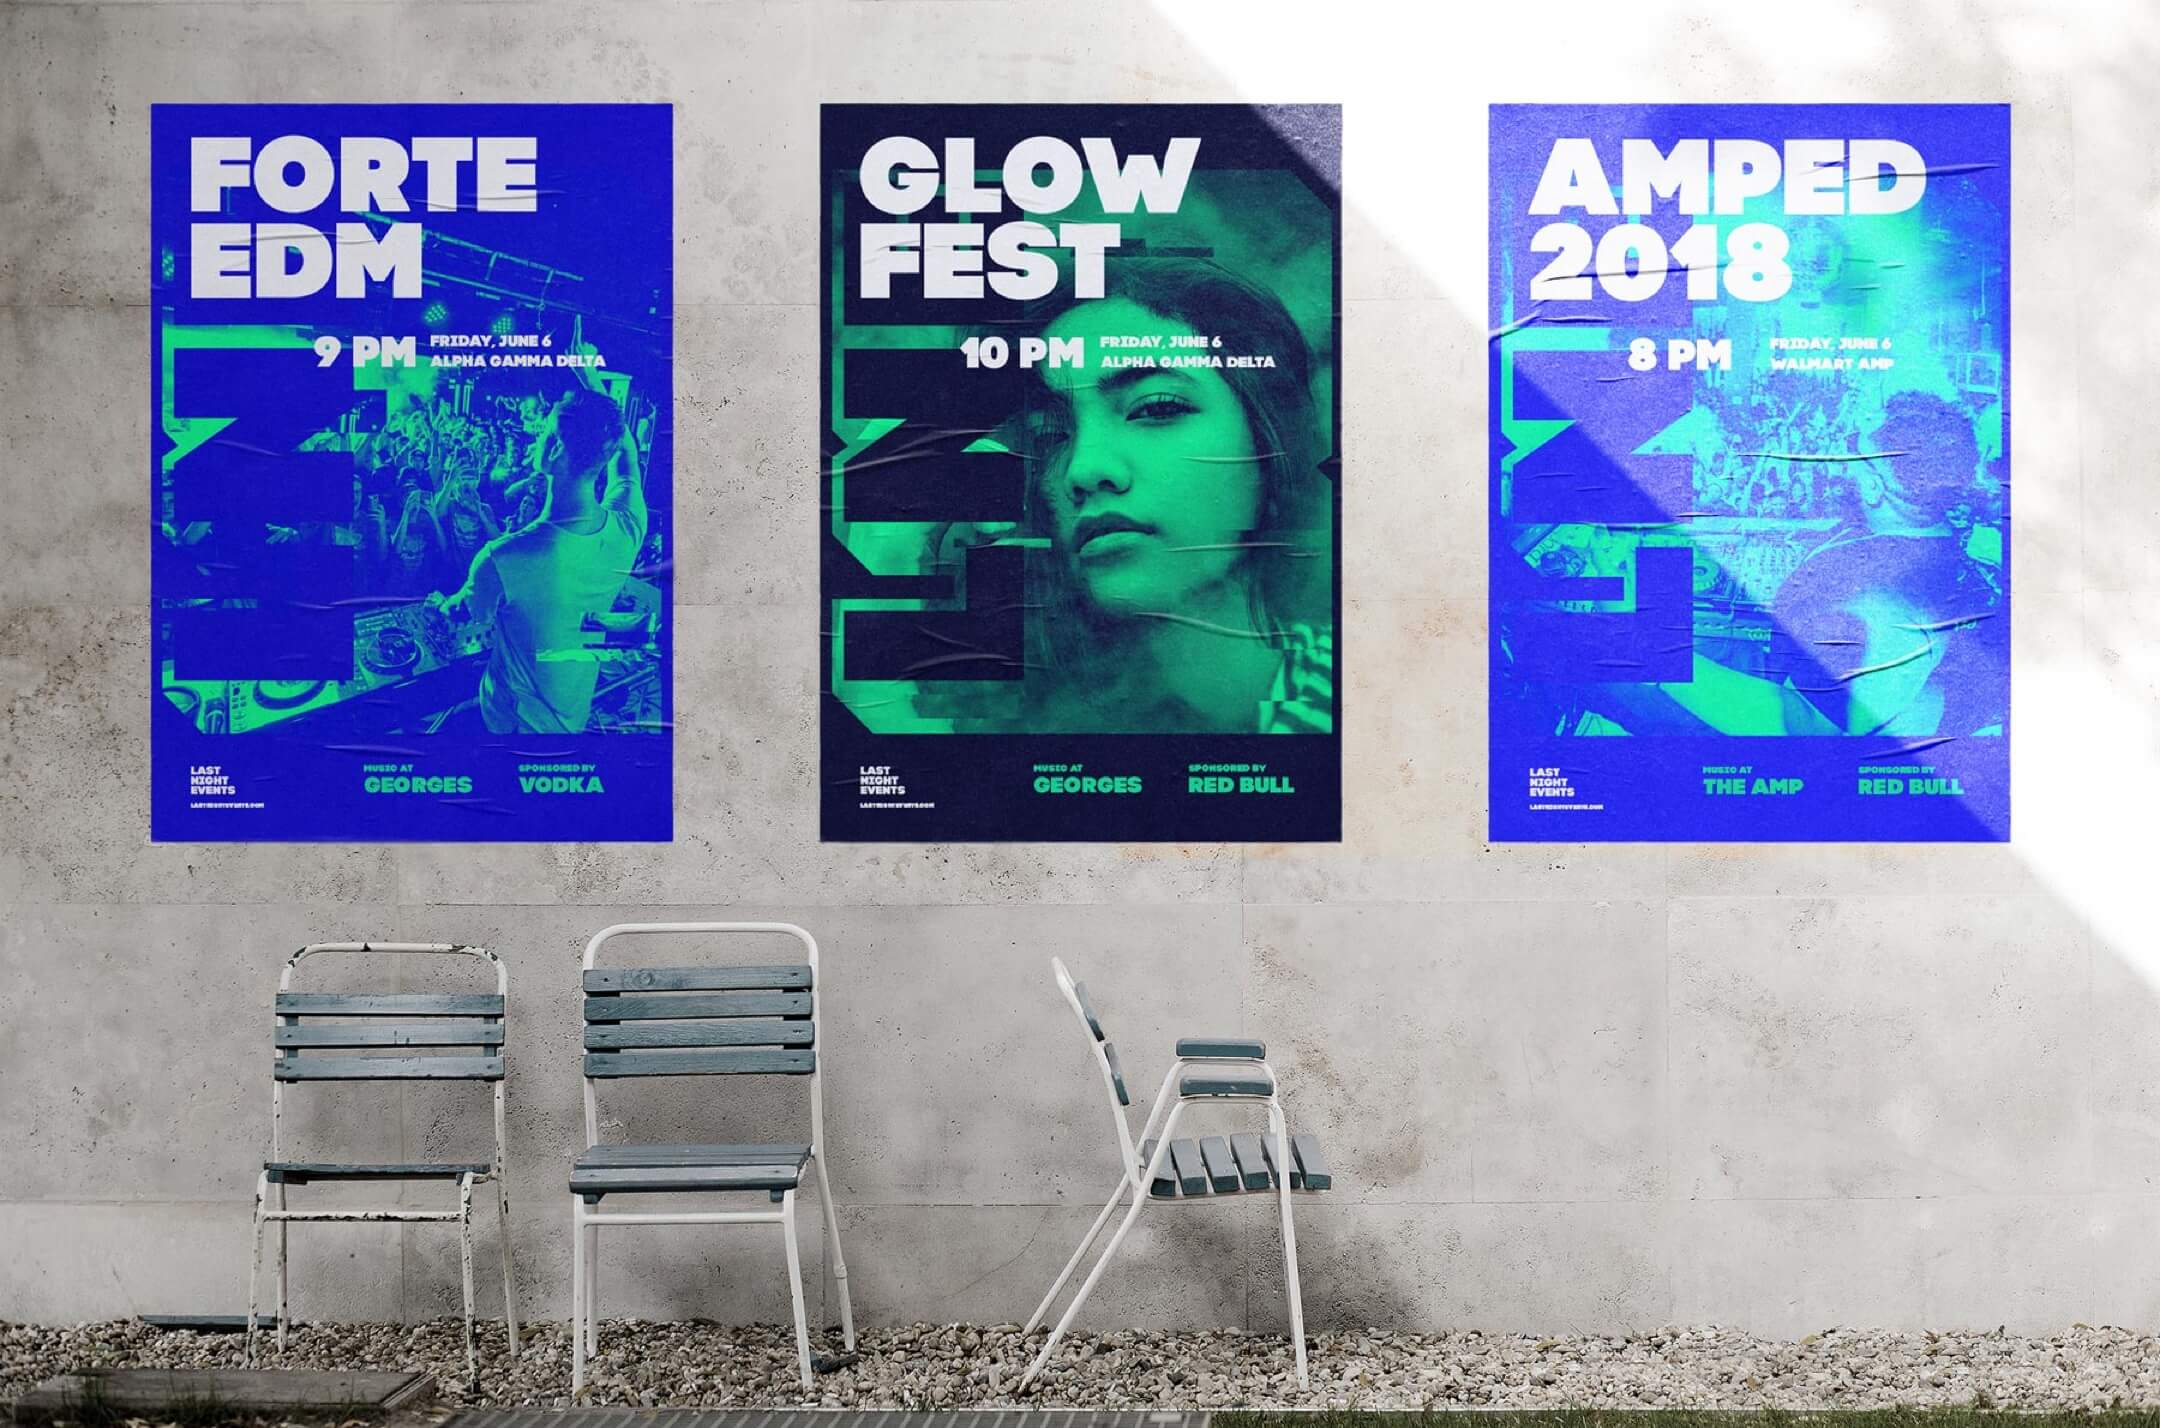 last night events posters